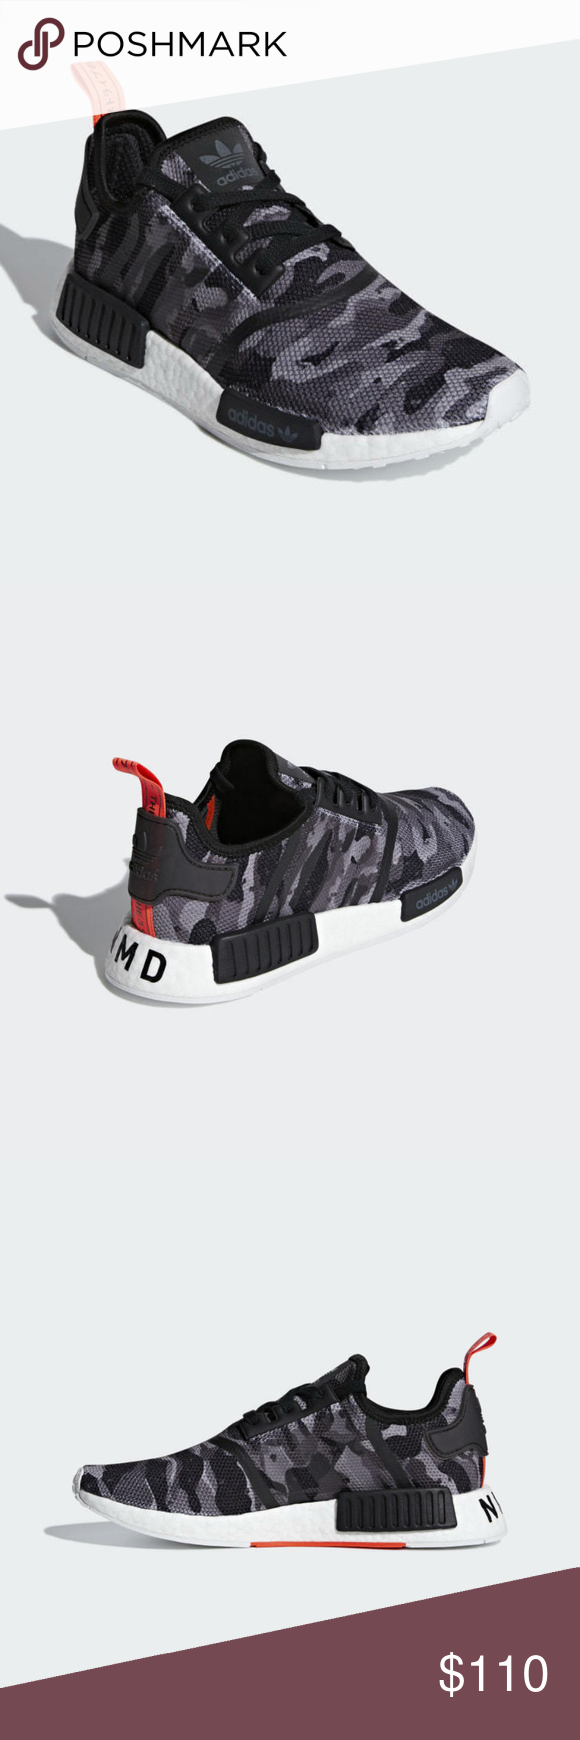 2017 Adidas NMD Runner Men | Facebook